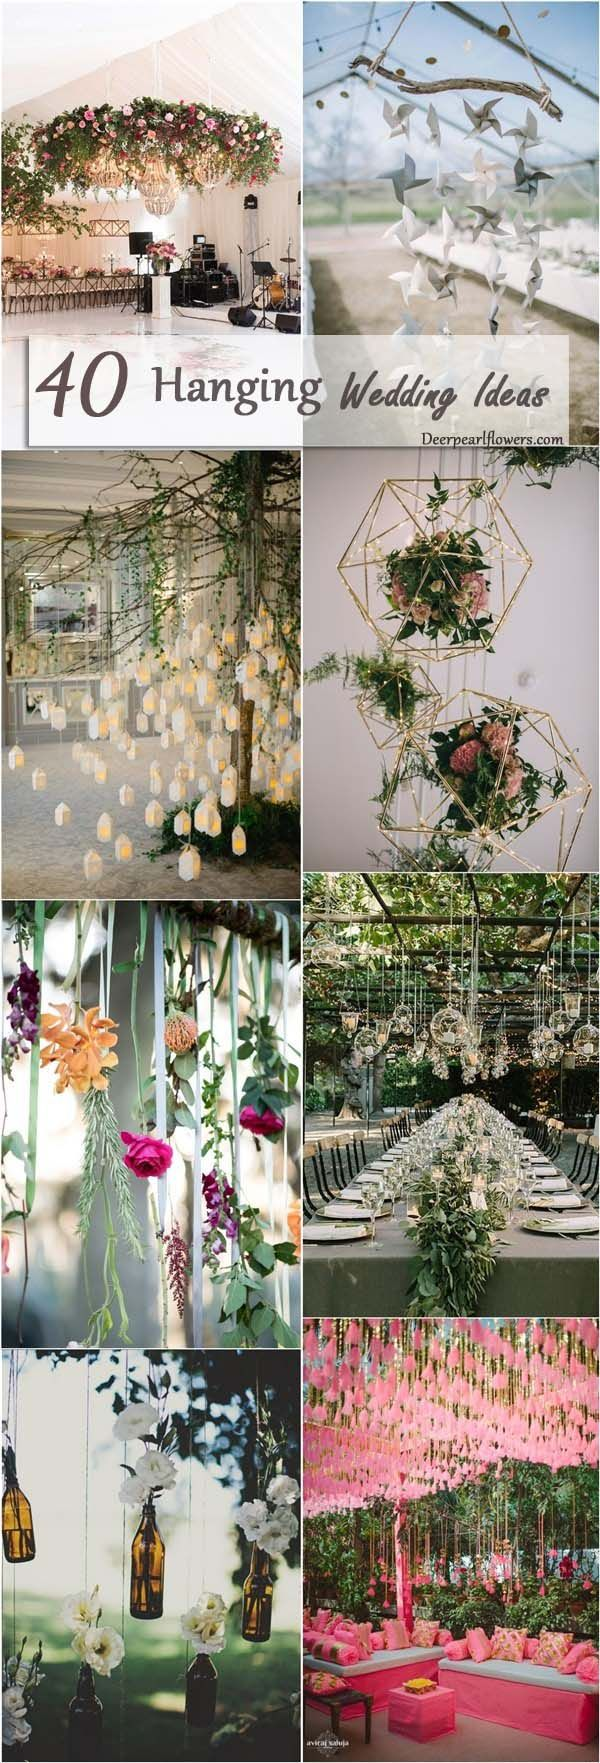 hanging wedding ideas and themes / http://www.deerpearlflowers.com/hanging-wedding-decor-ideas/2/